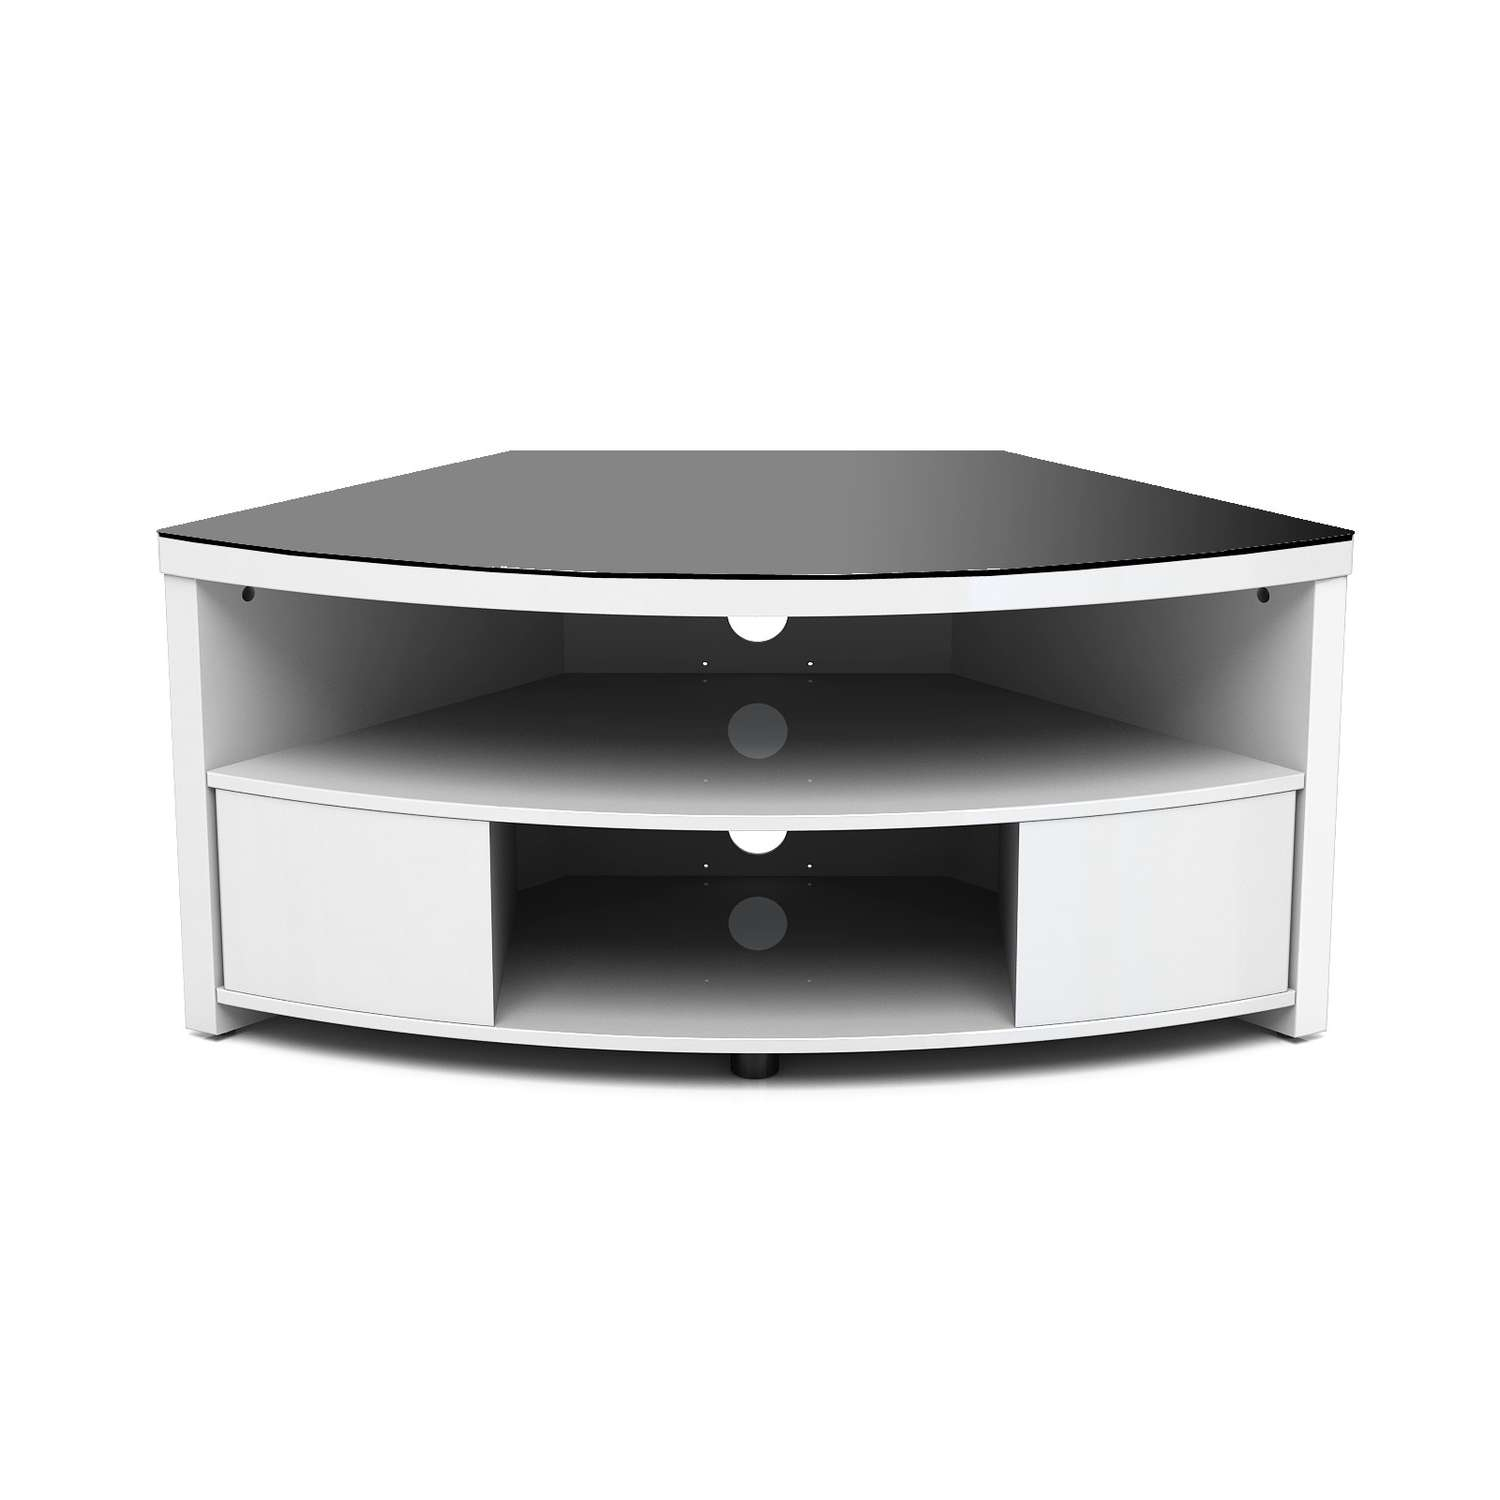 Small Corner Low Profile Tv Console With Storage And Drawer Throughout White Small Corner Tv Stands (View 12 of 15)